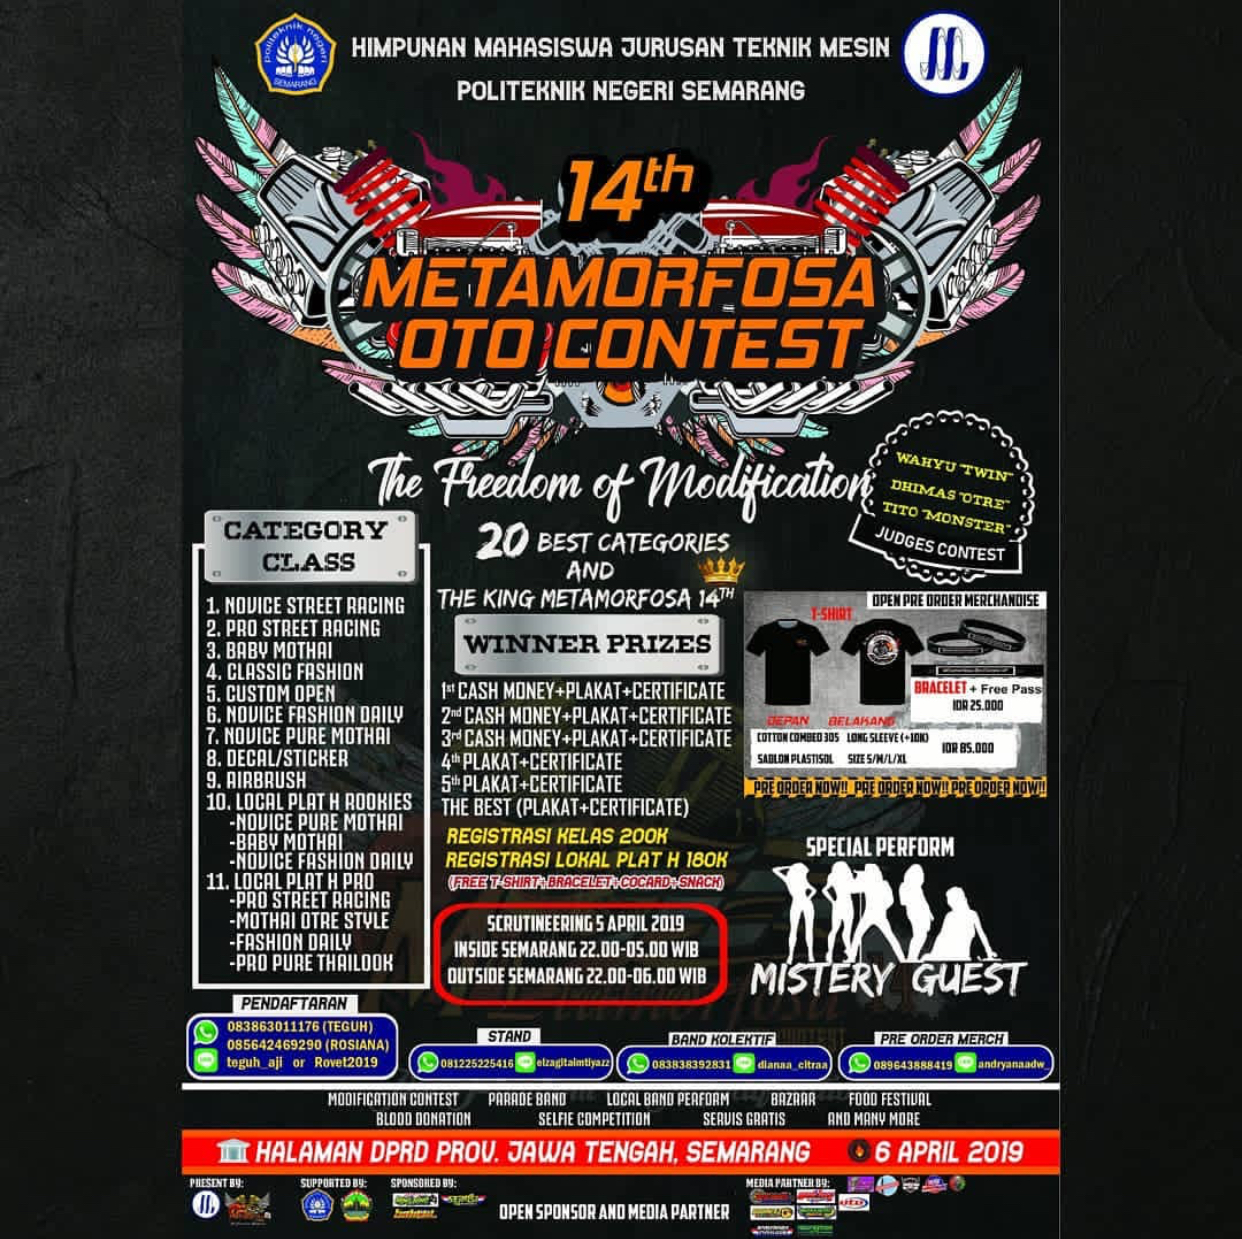 Event Semarang - Memorfosa Oto Contest 14th